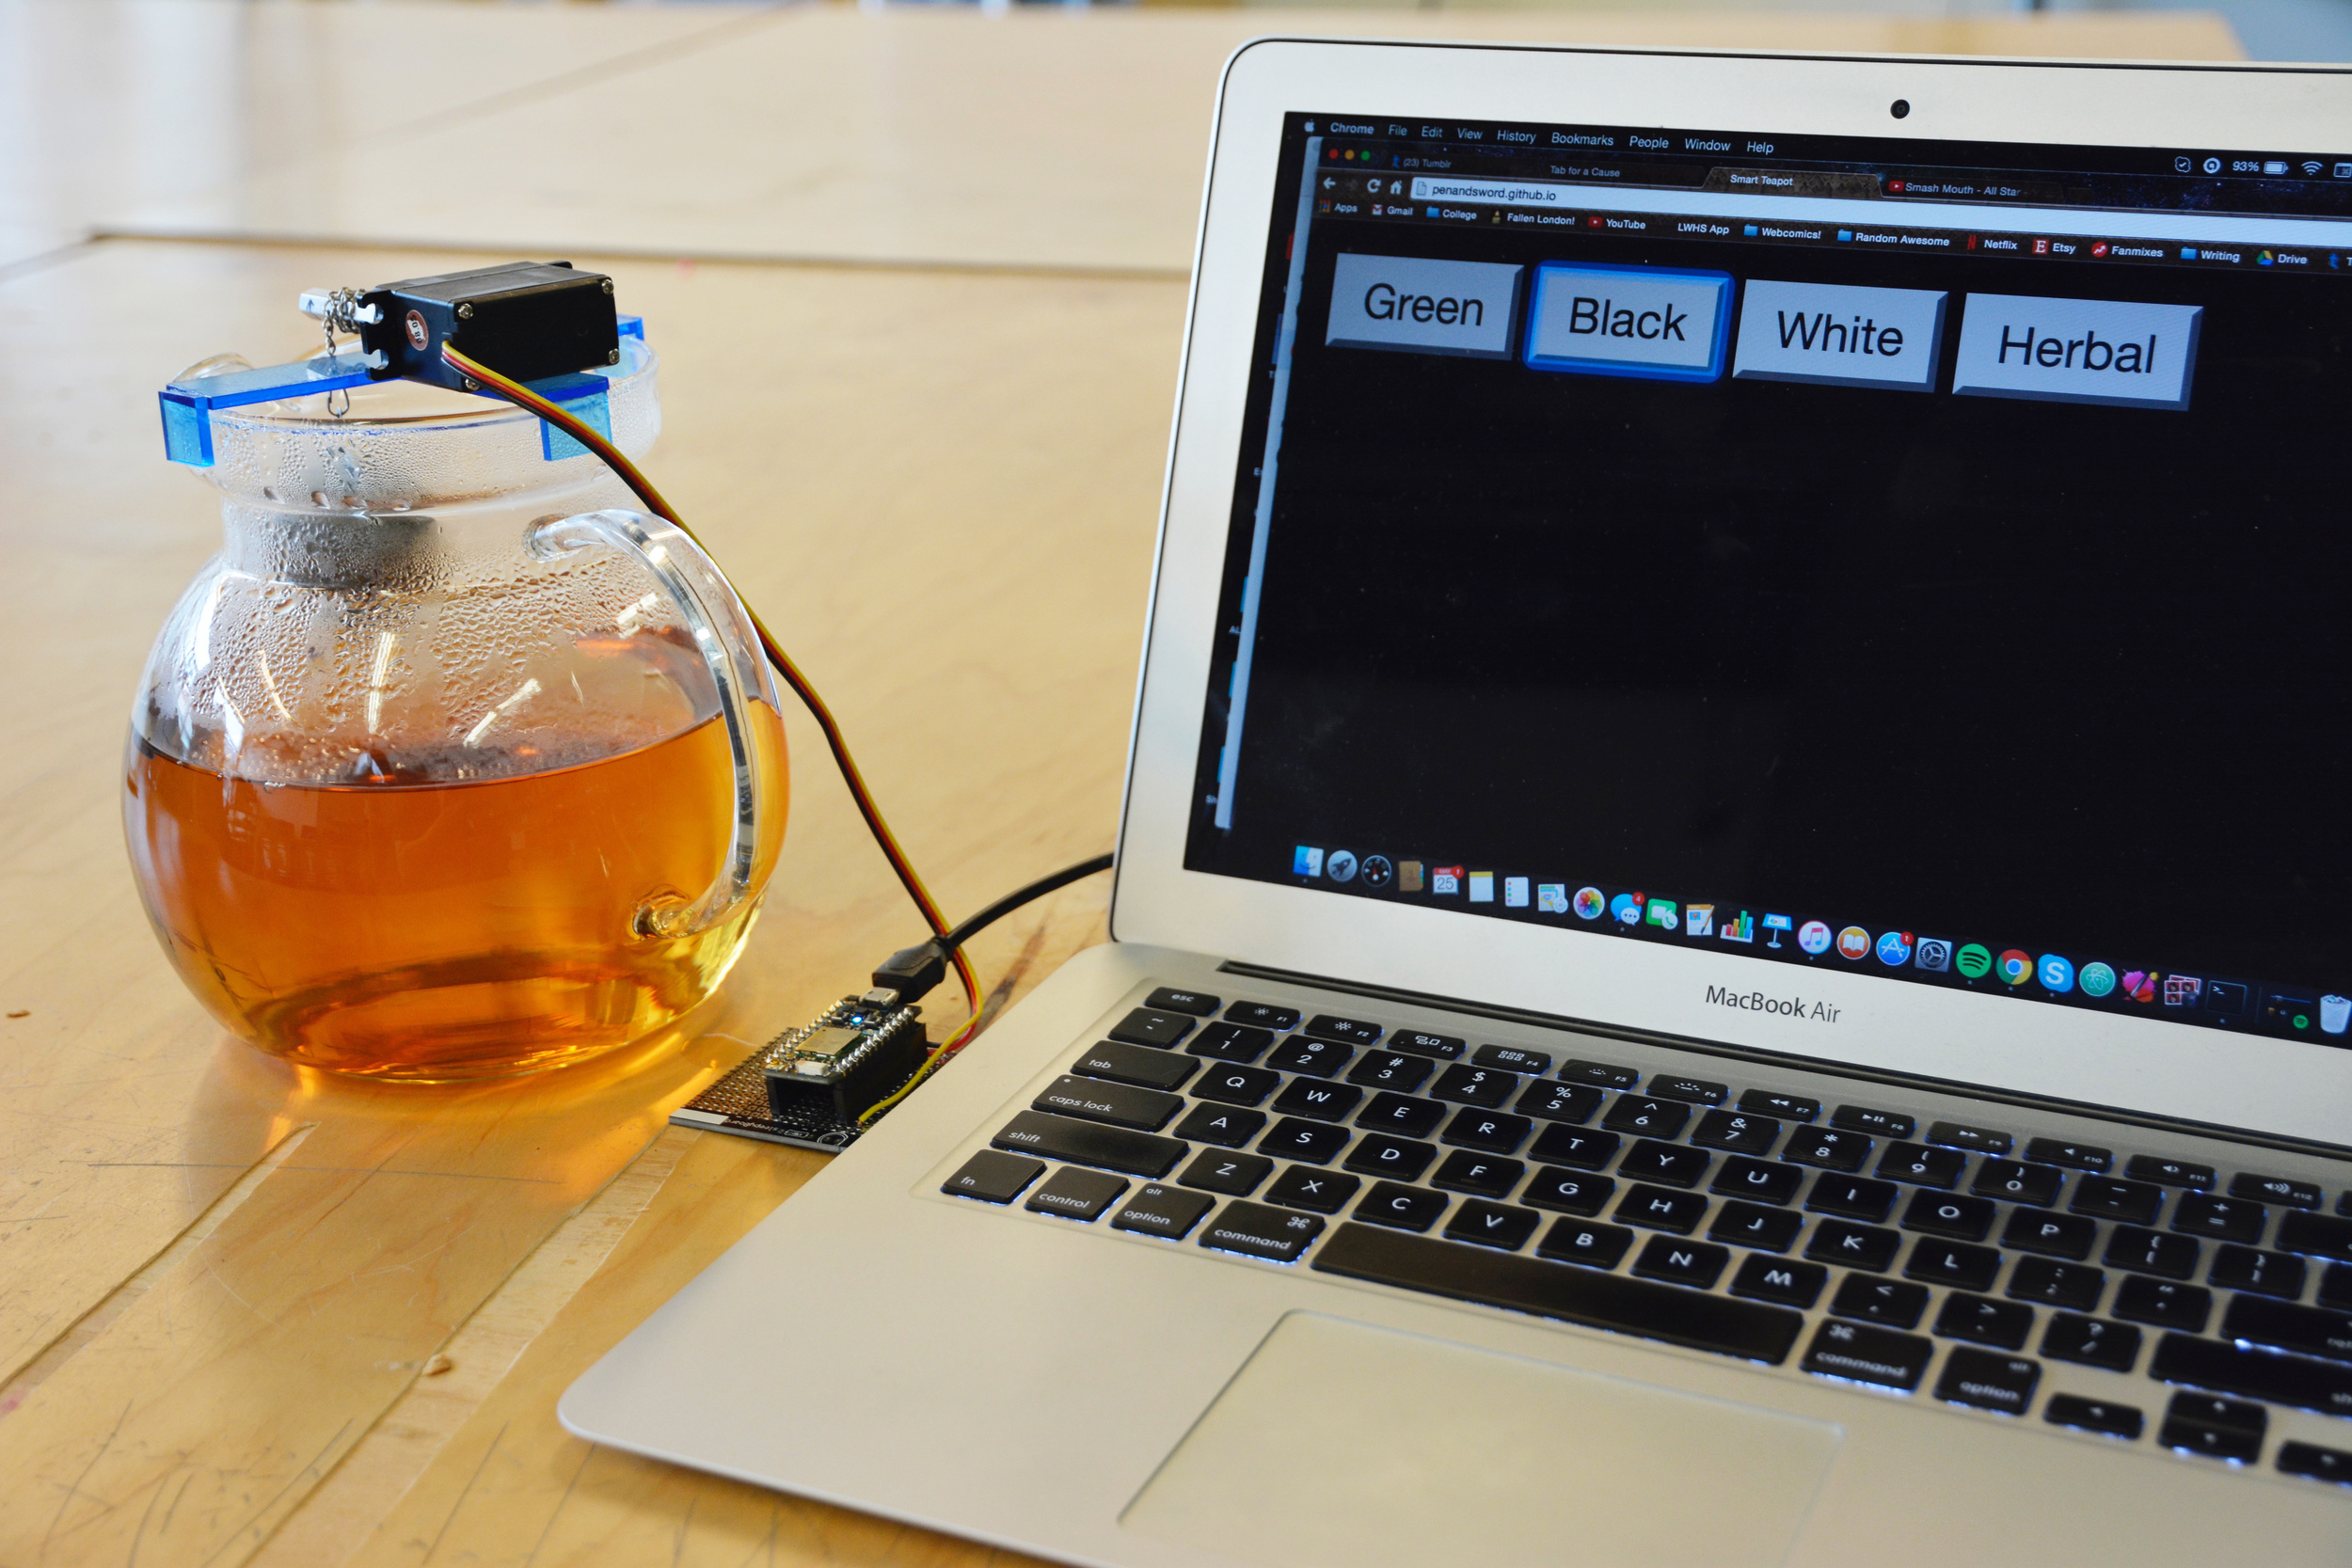 Lois's Internet-controlled tea infuser. The steep time can be adjusted via a web app.